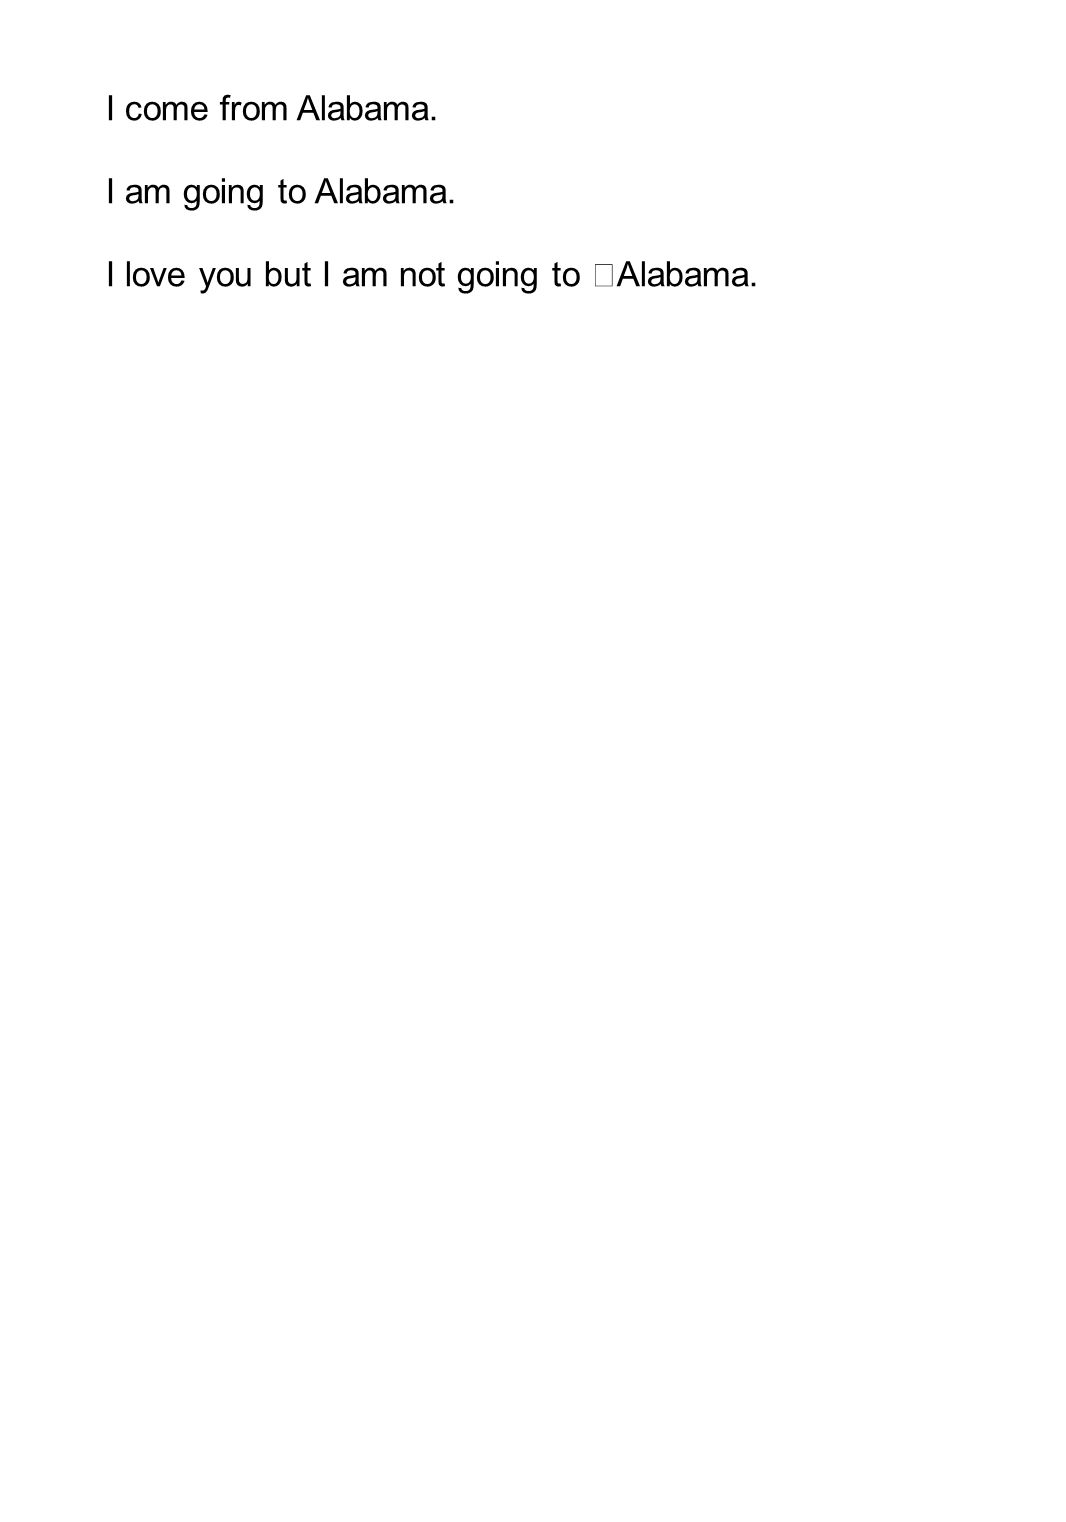 I come from Alabama. I am going to Alabama. I love you but I am not going to Alabama.